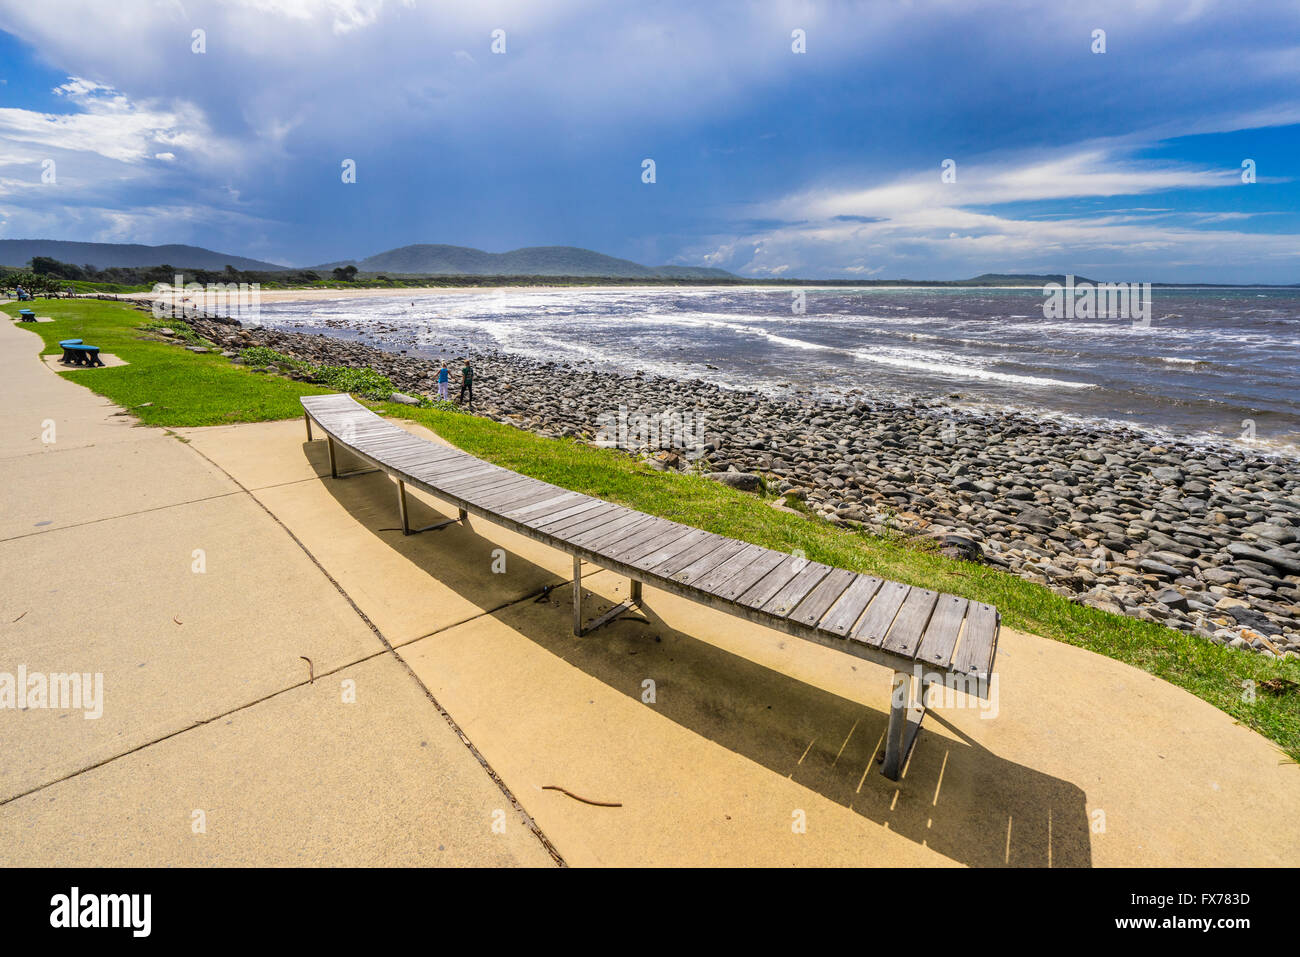 Australia, New South Wales, Mid North Coast region, view of Crescent Head Beach pebbly shoreline of the Little Nobby - Stock Image